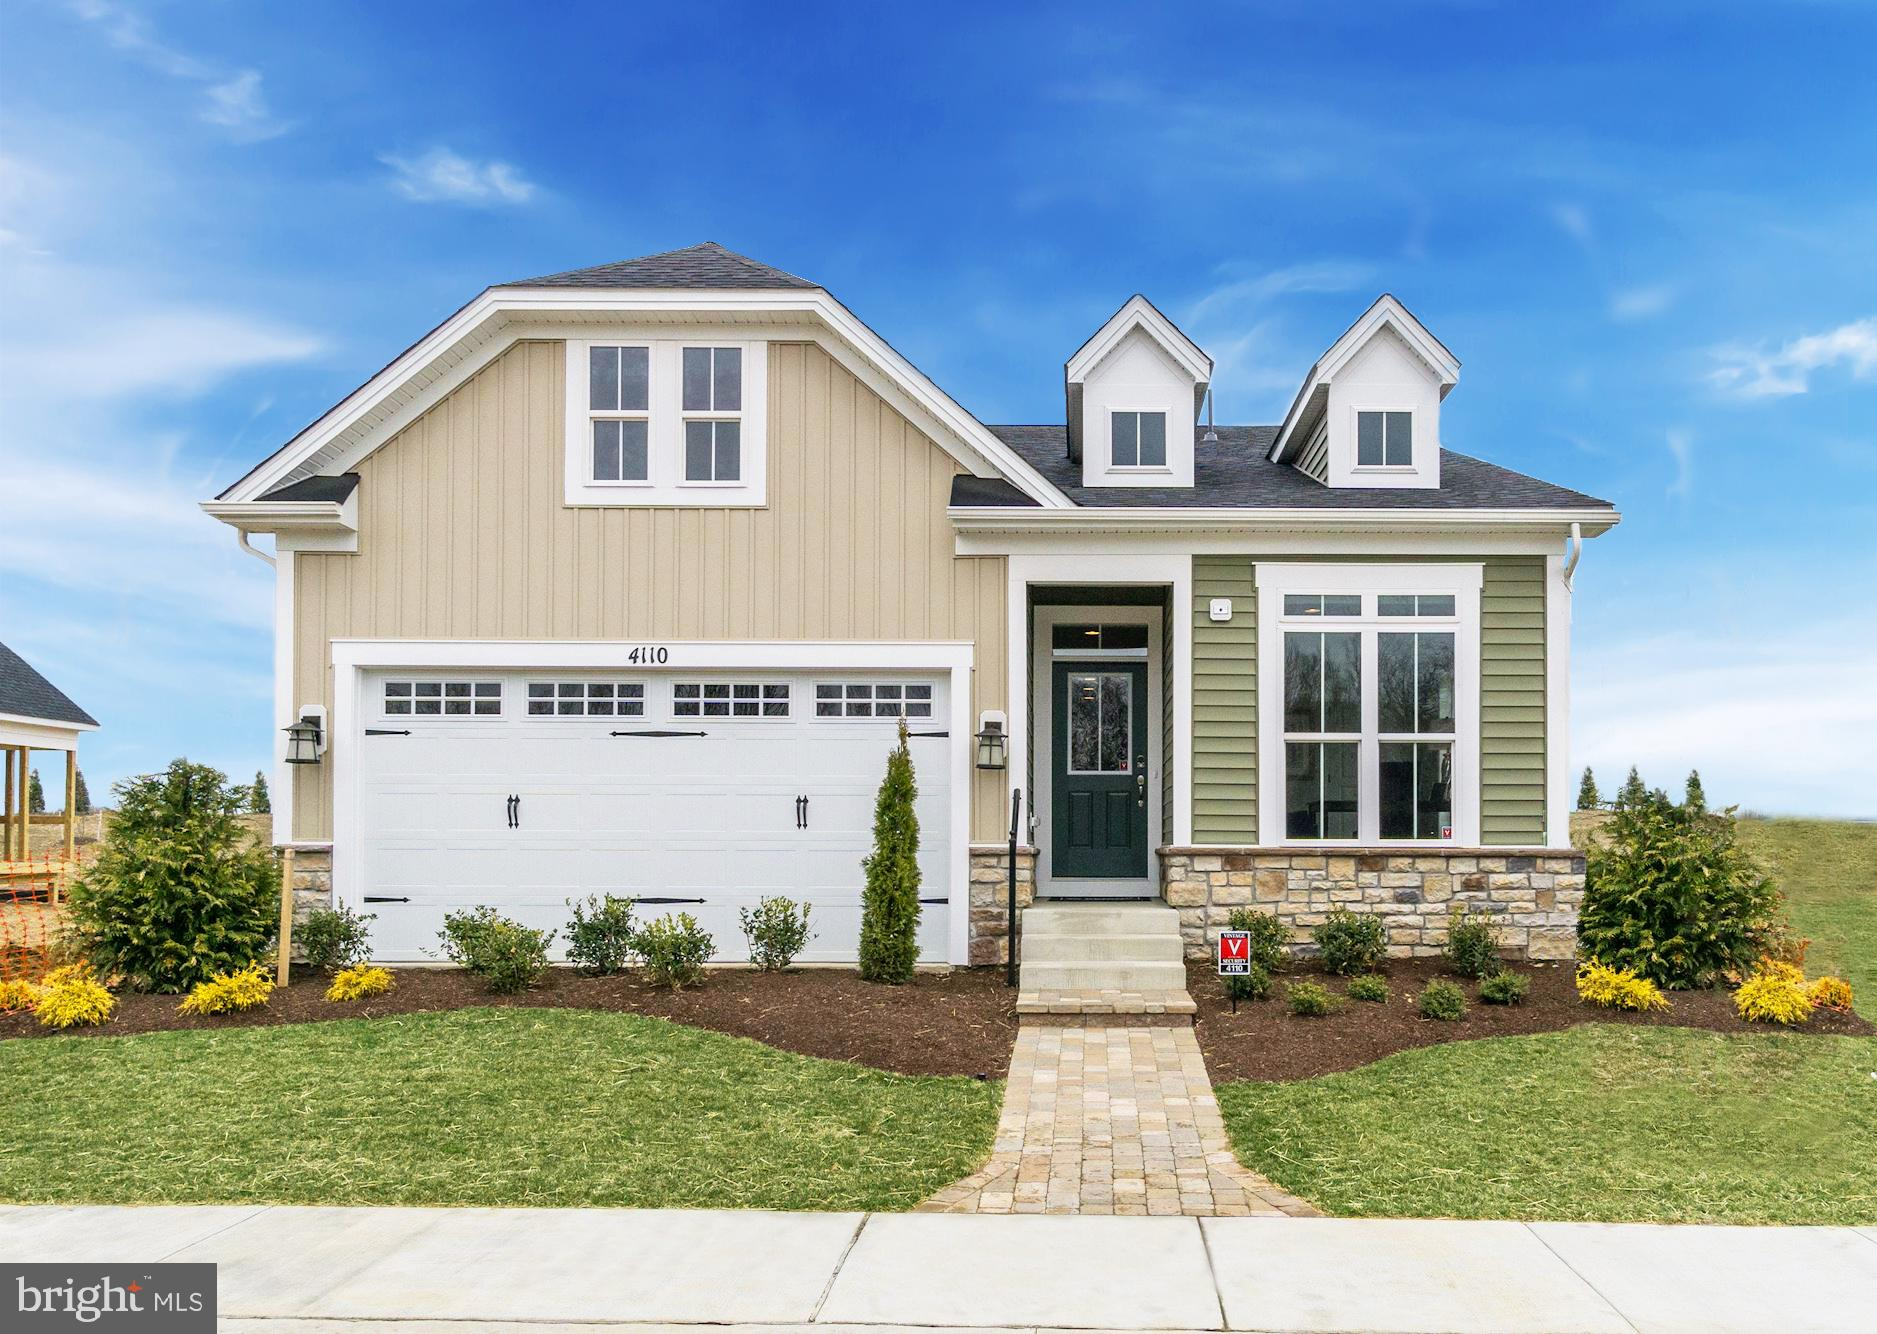 4110 CURLED DOCK LANE, ODENTON, MD 21113